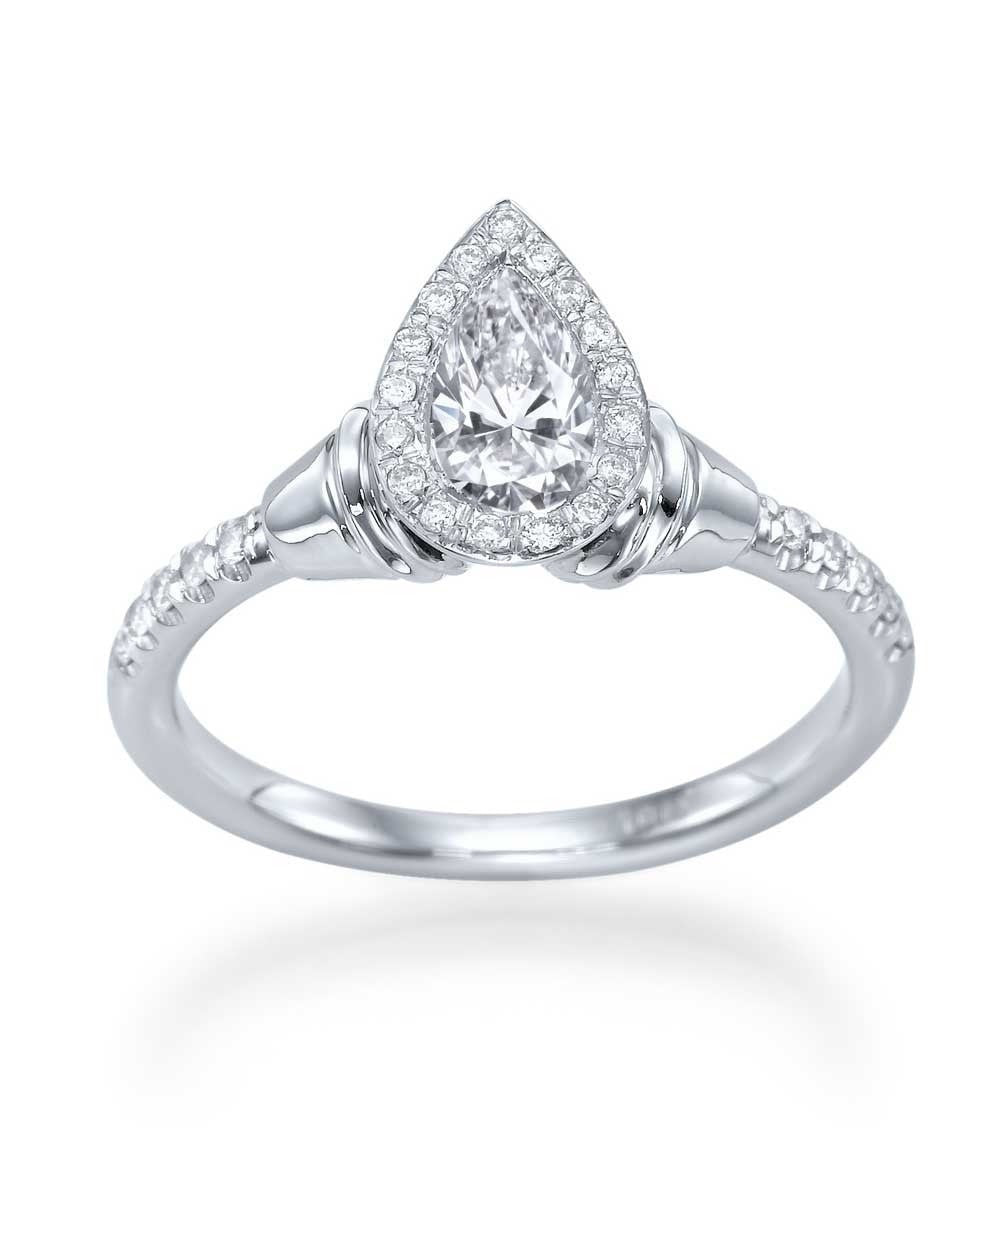 Engagement Rings Pear Shaped Vintage Engagement Ring  065ct Halo  Design